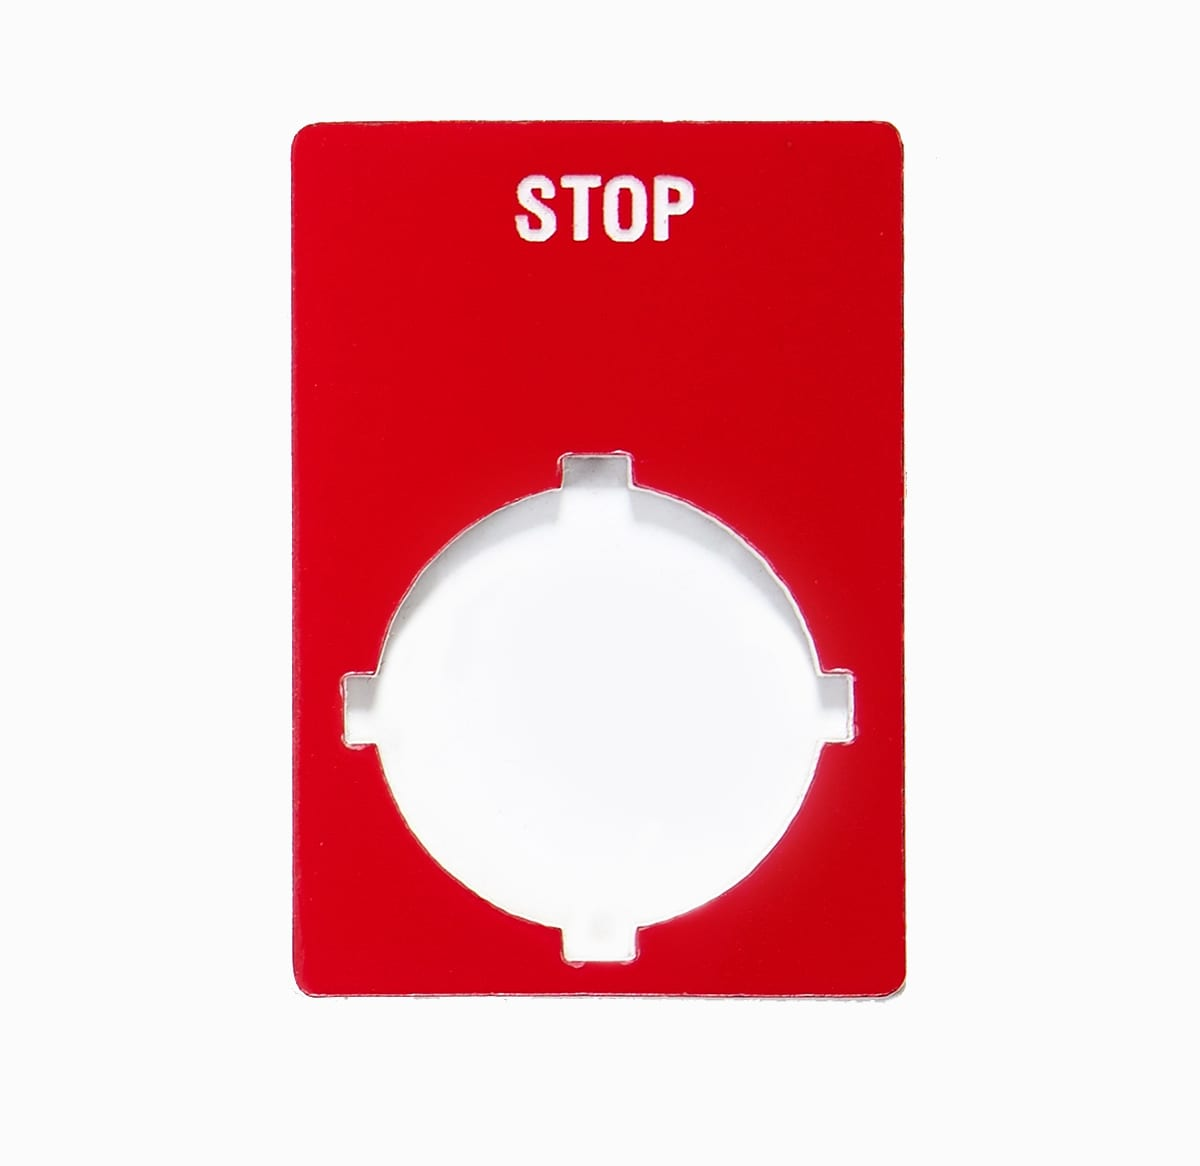 Red Stop With White Circle Machine Safety Tag